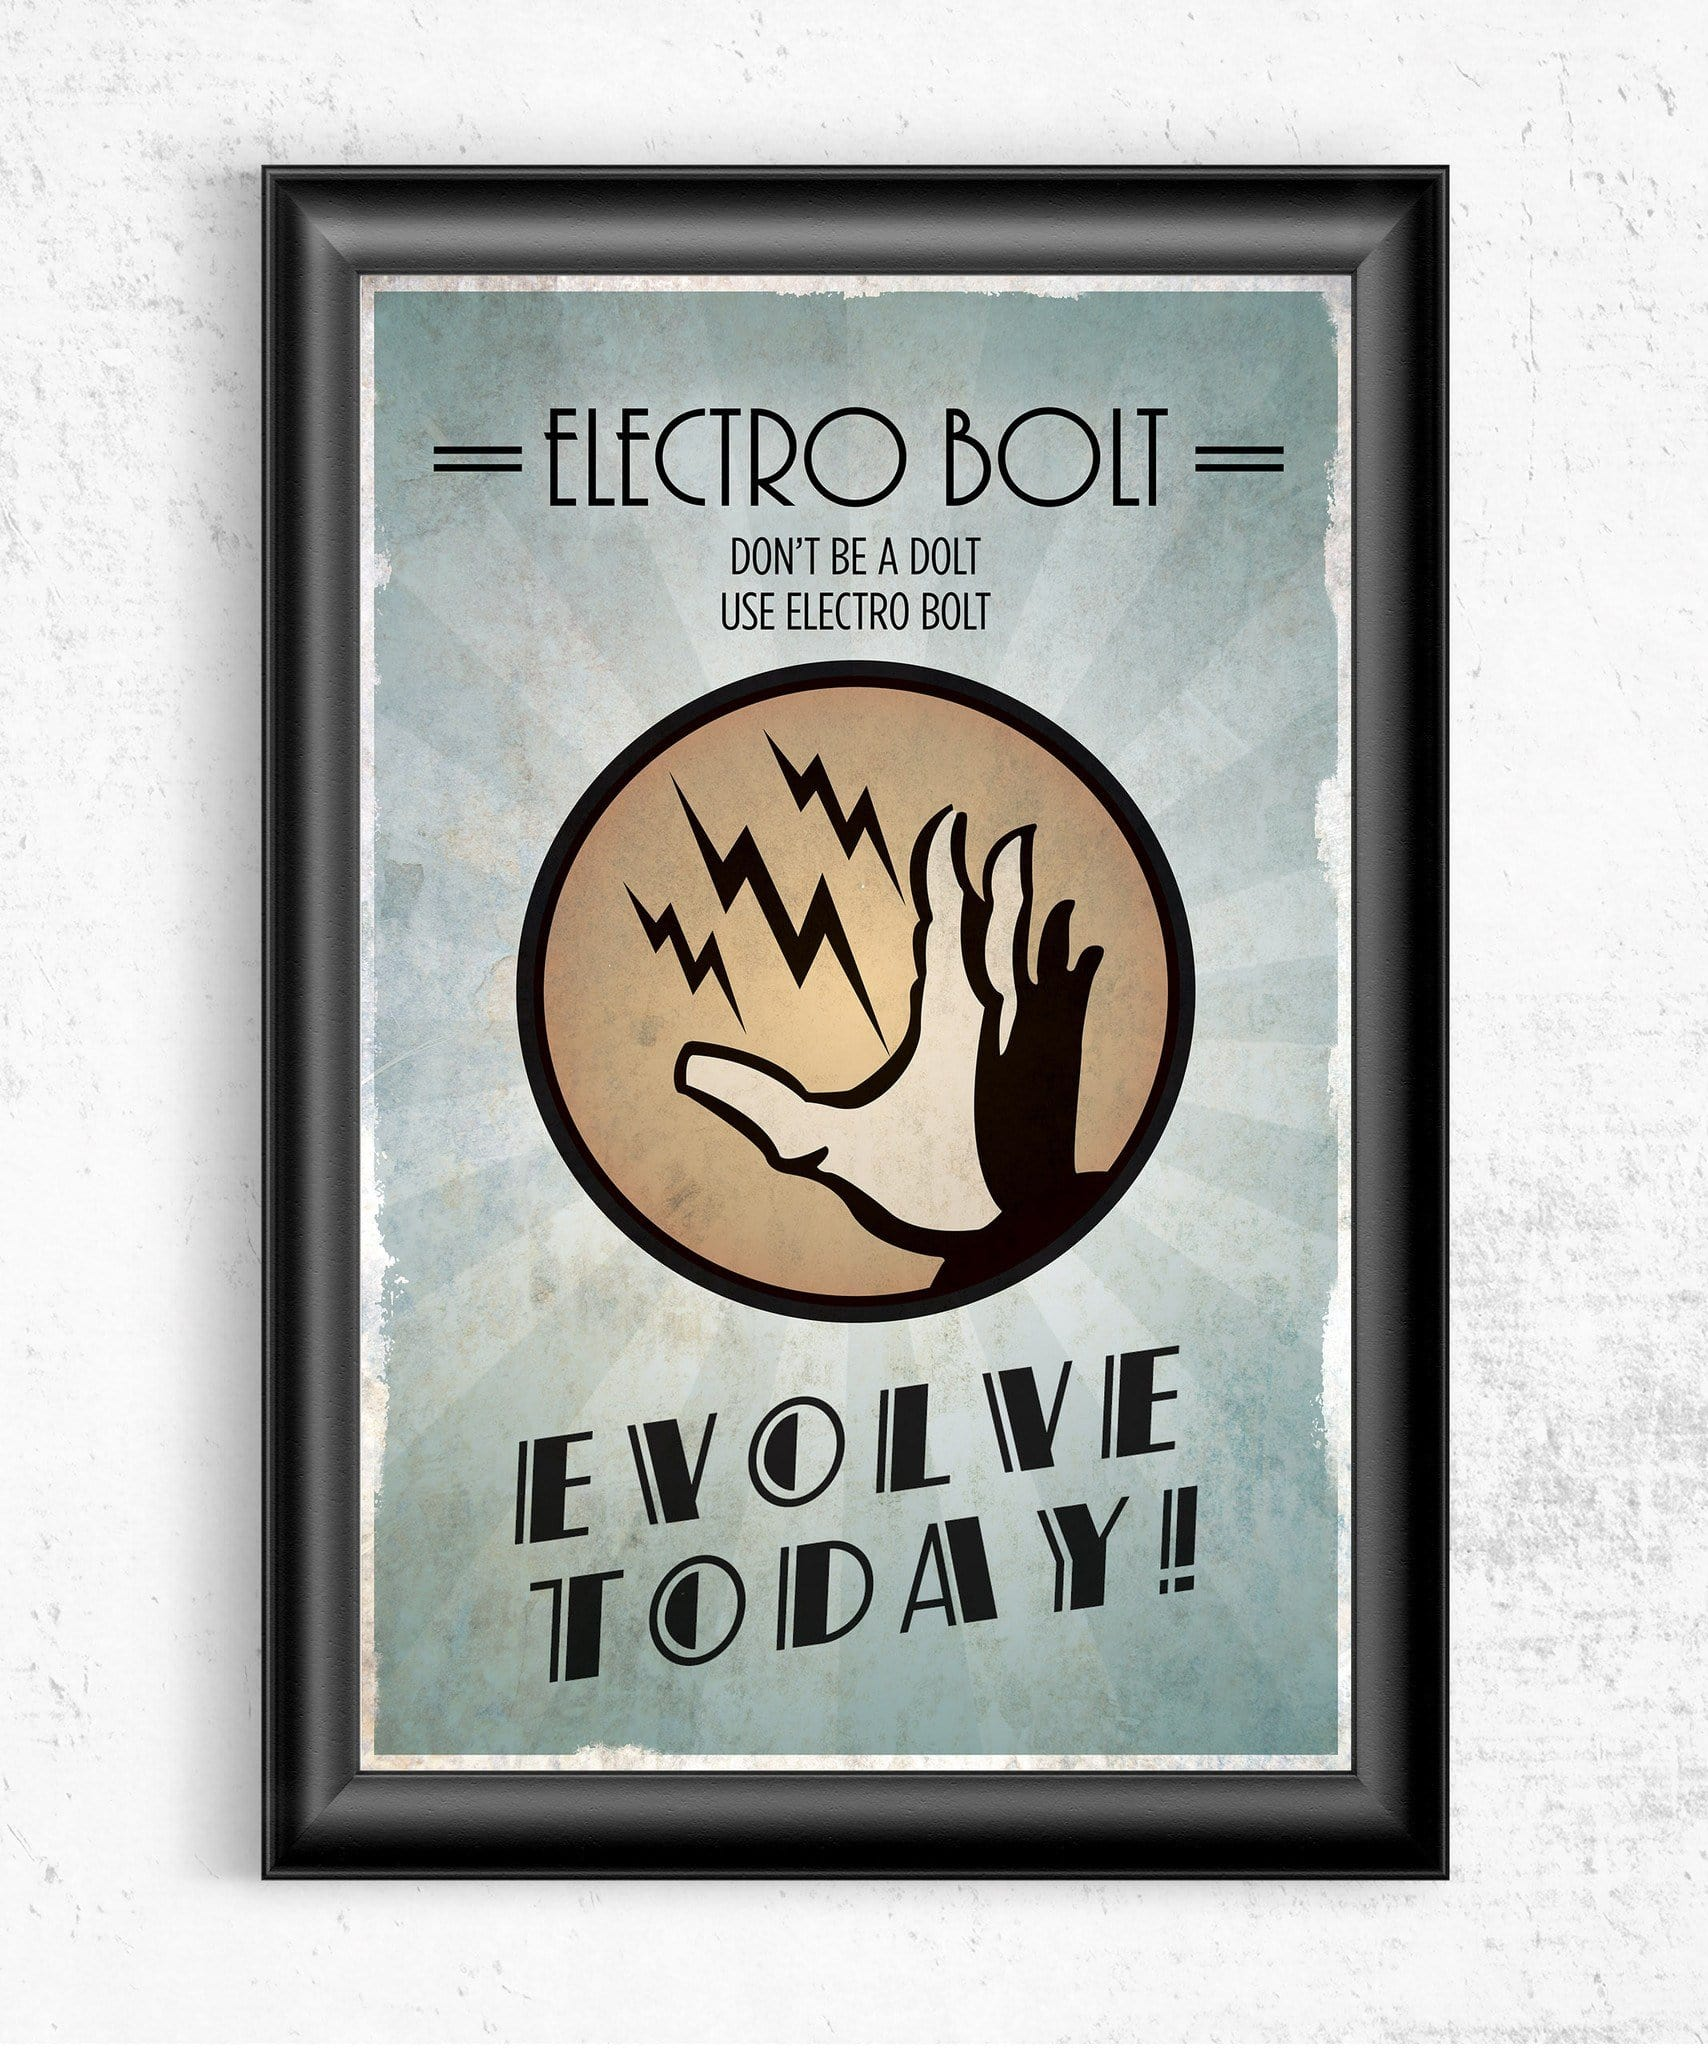 Bioshock Plasmid Electro Bolt Posters by Dylan West - Pixel Empire